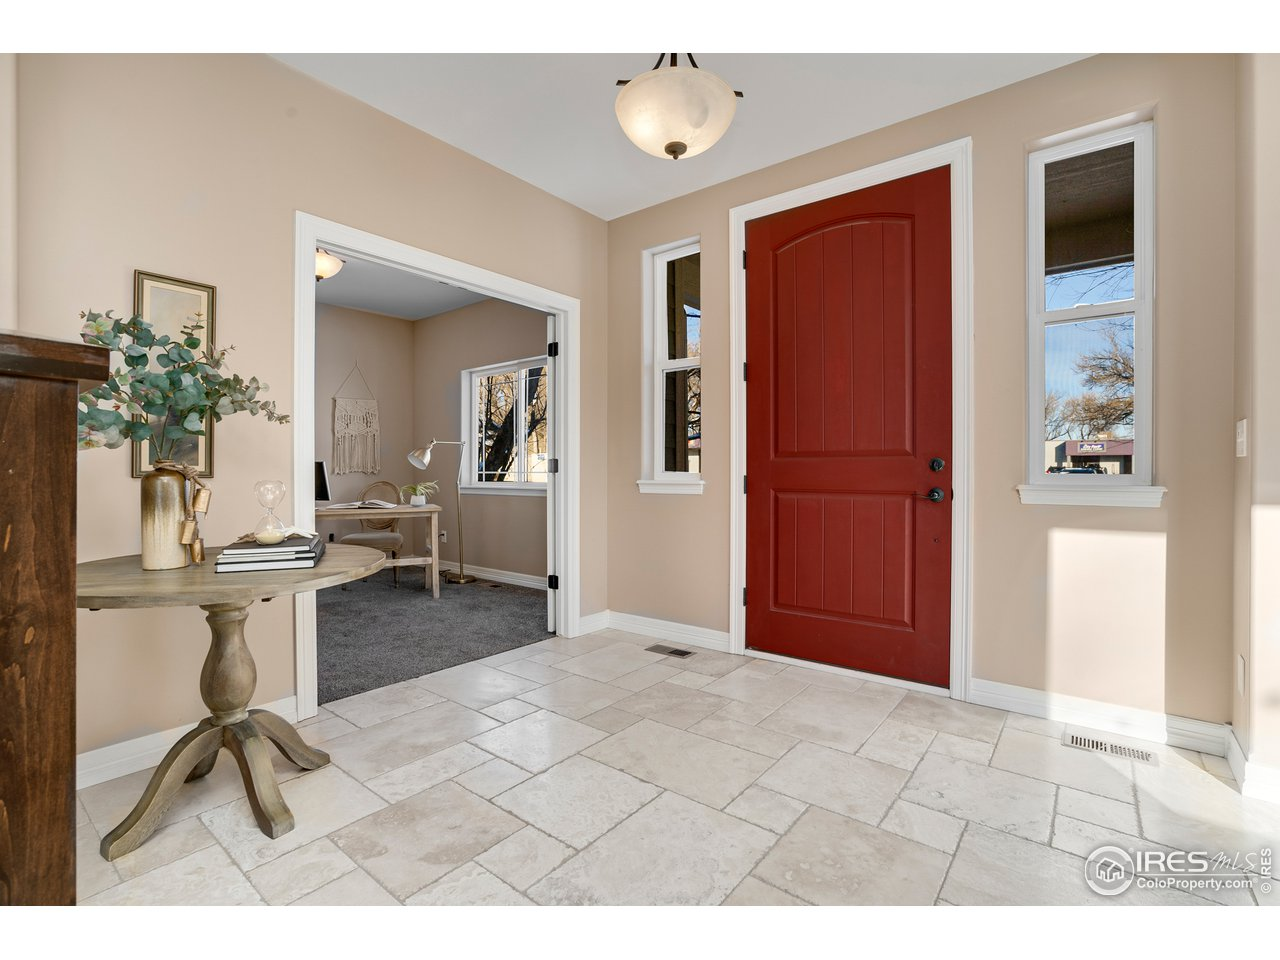 Front door and foyer looking into conforming bedroom or study with french doors